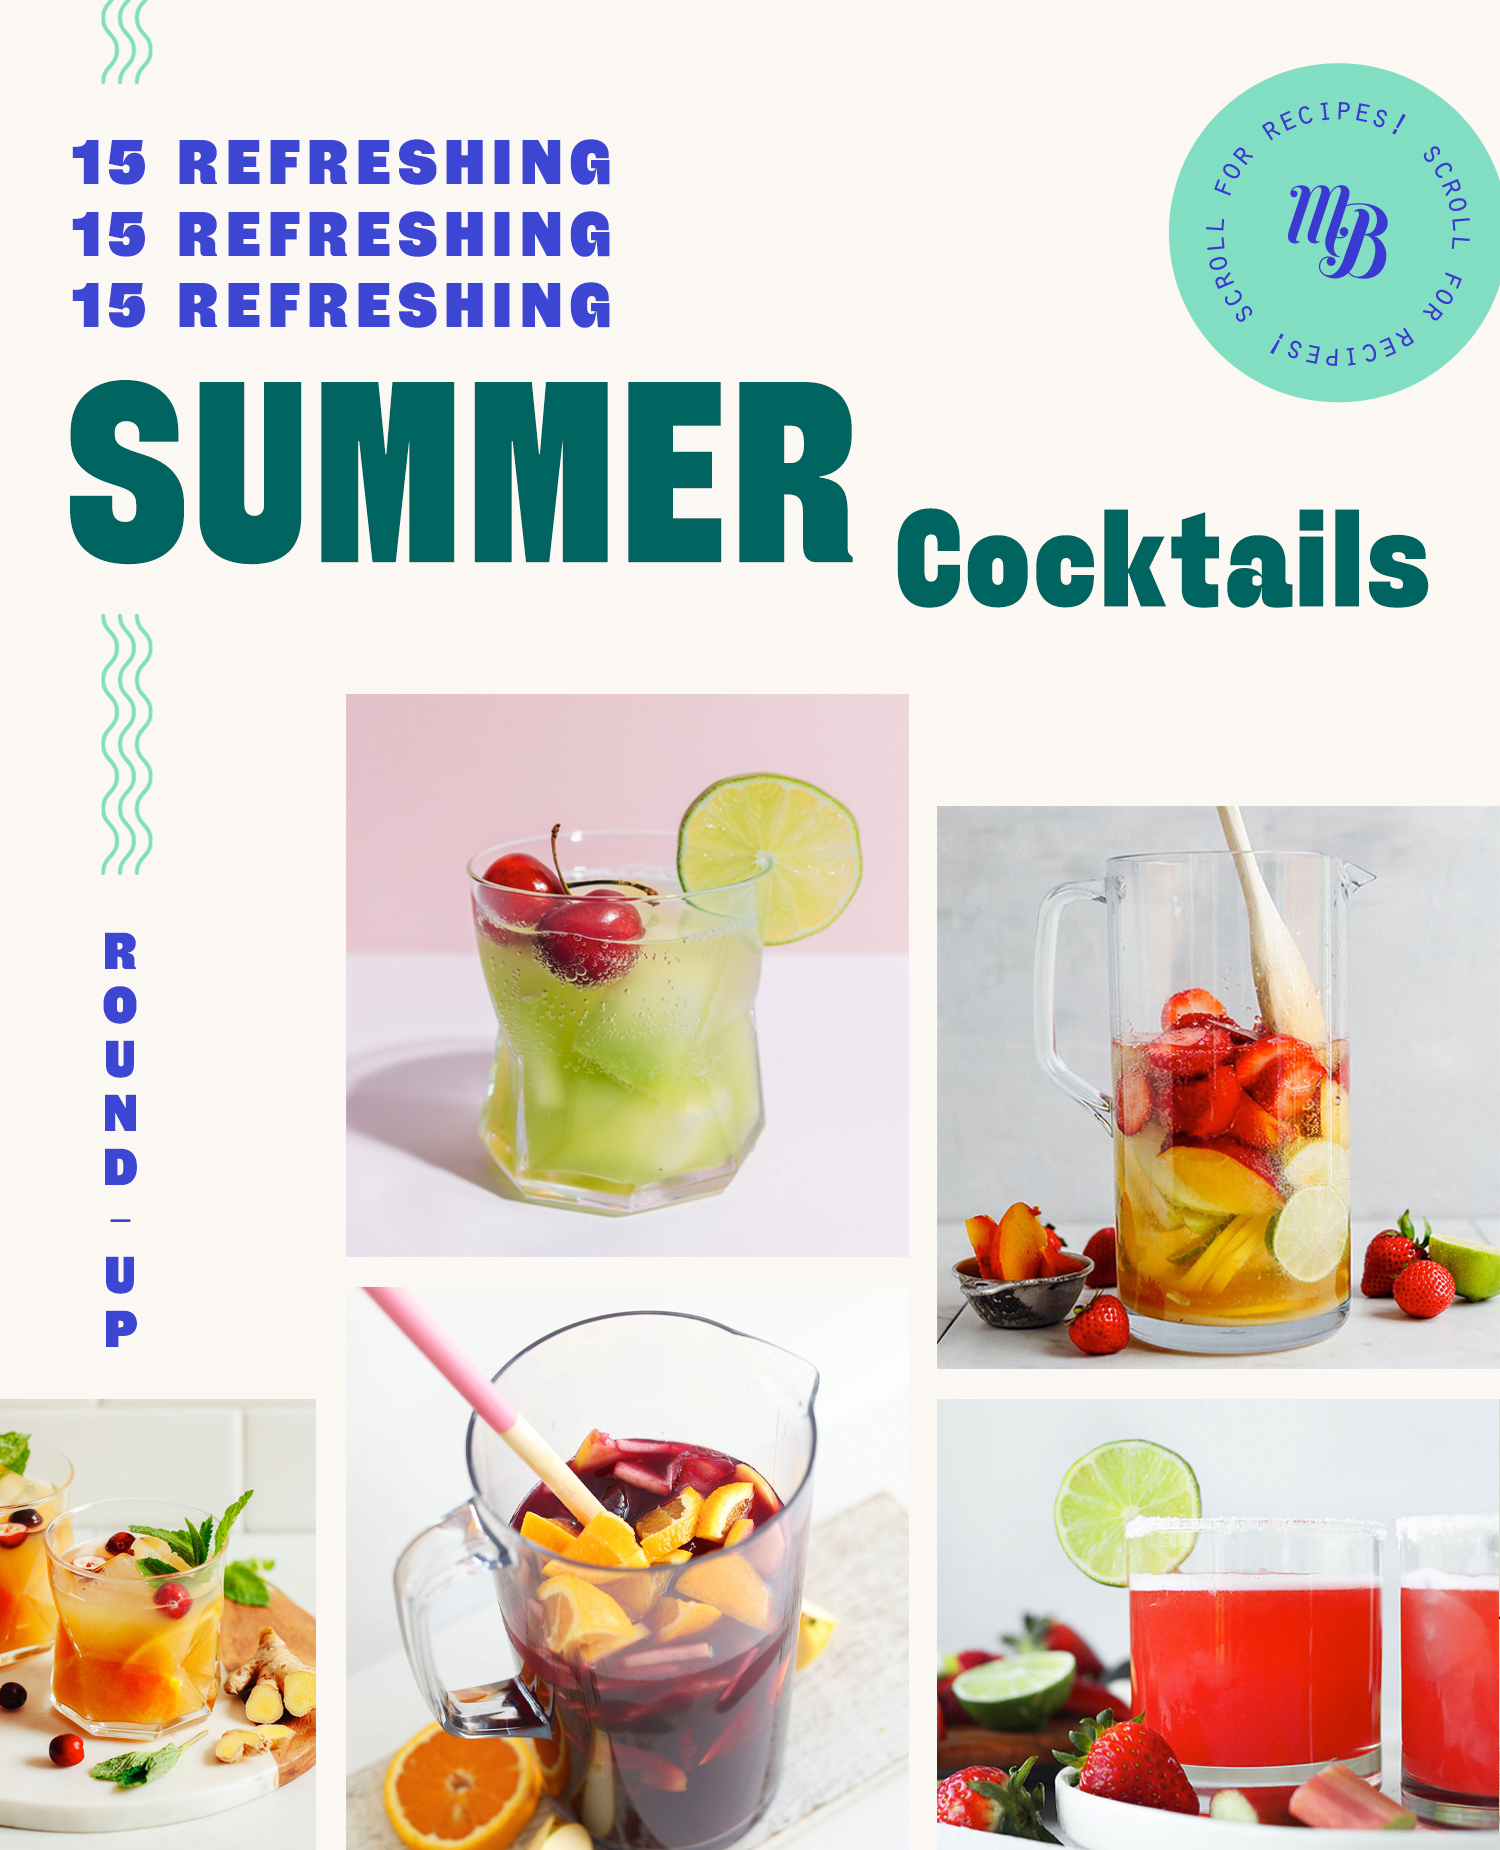 Assortment of refreshing summer cocktails